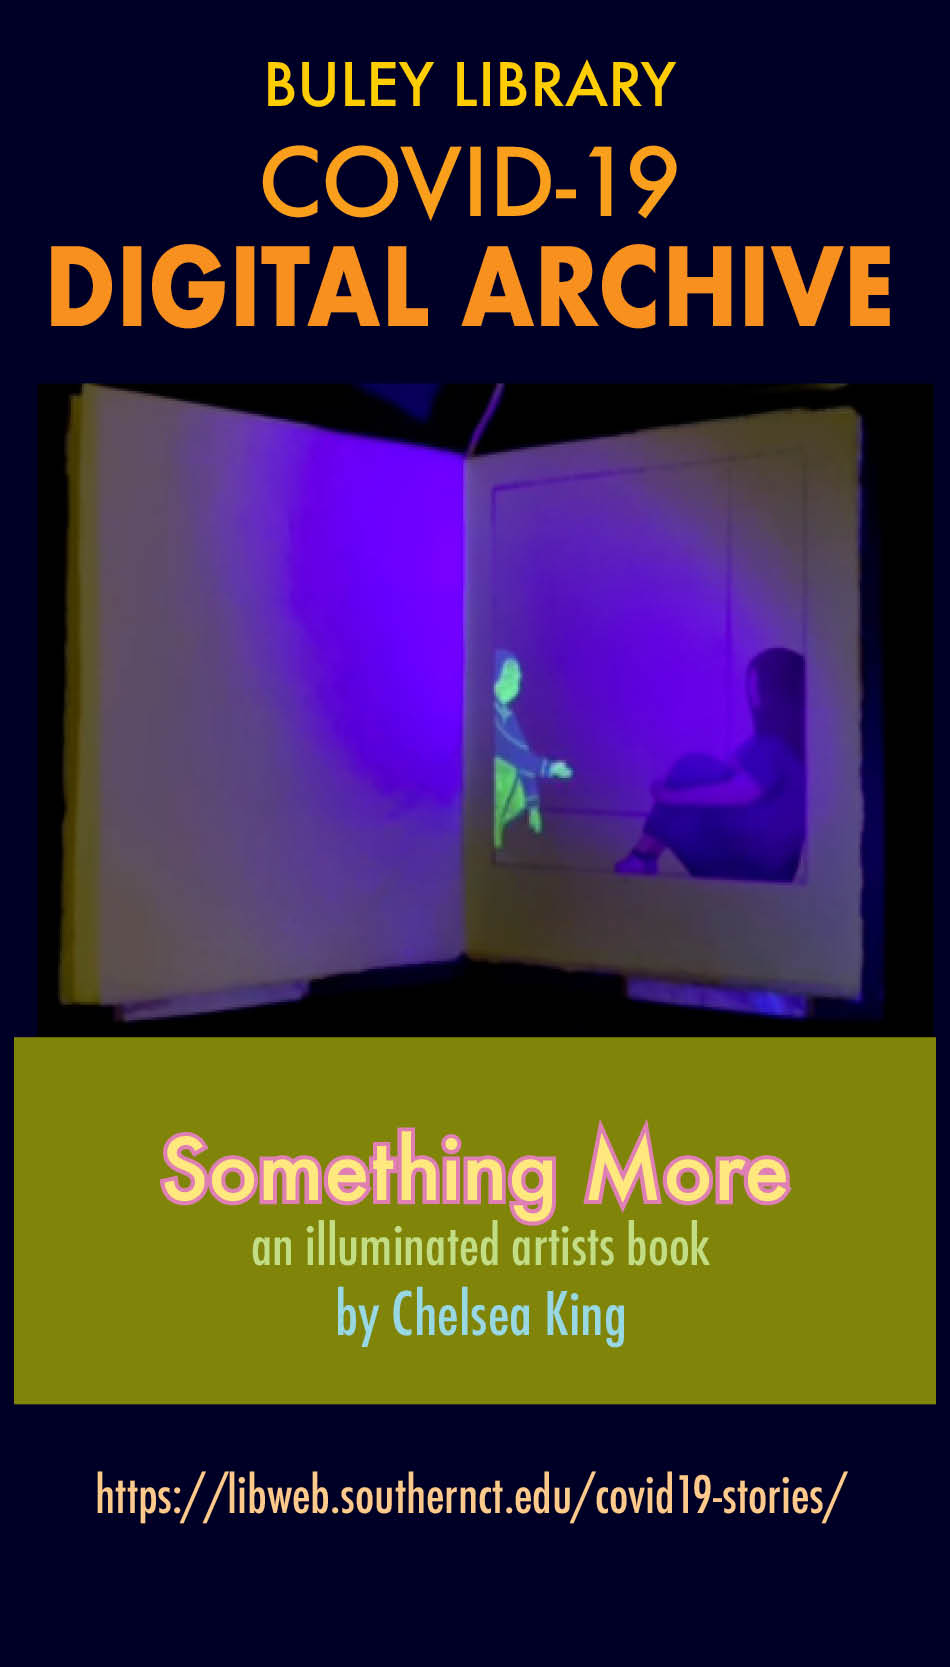 A glow in the dark figure is illuminated on the pages of book: Something More: an illuminted artist book by Chelsea King